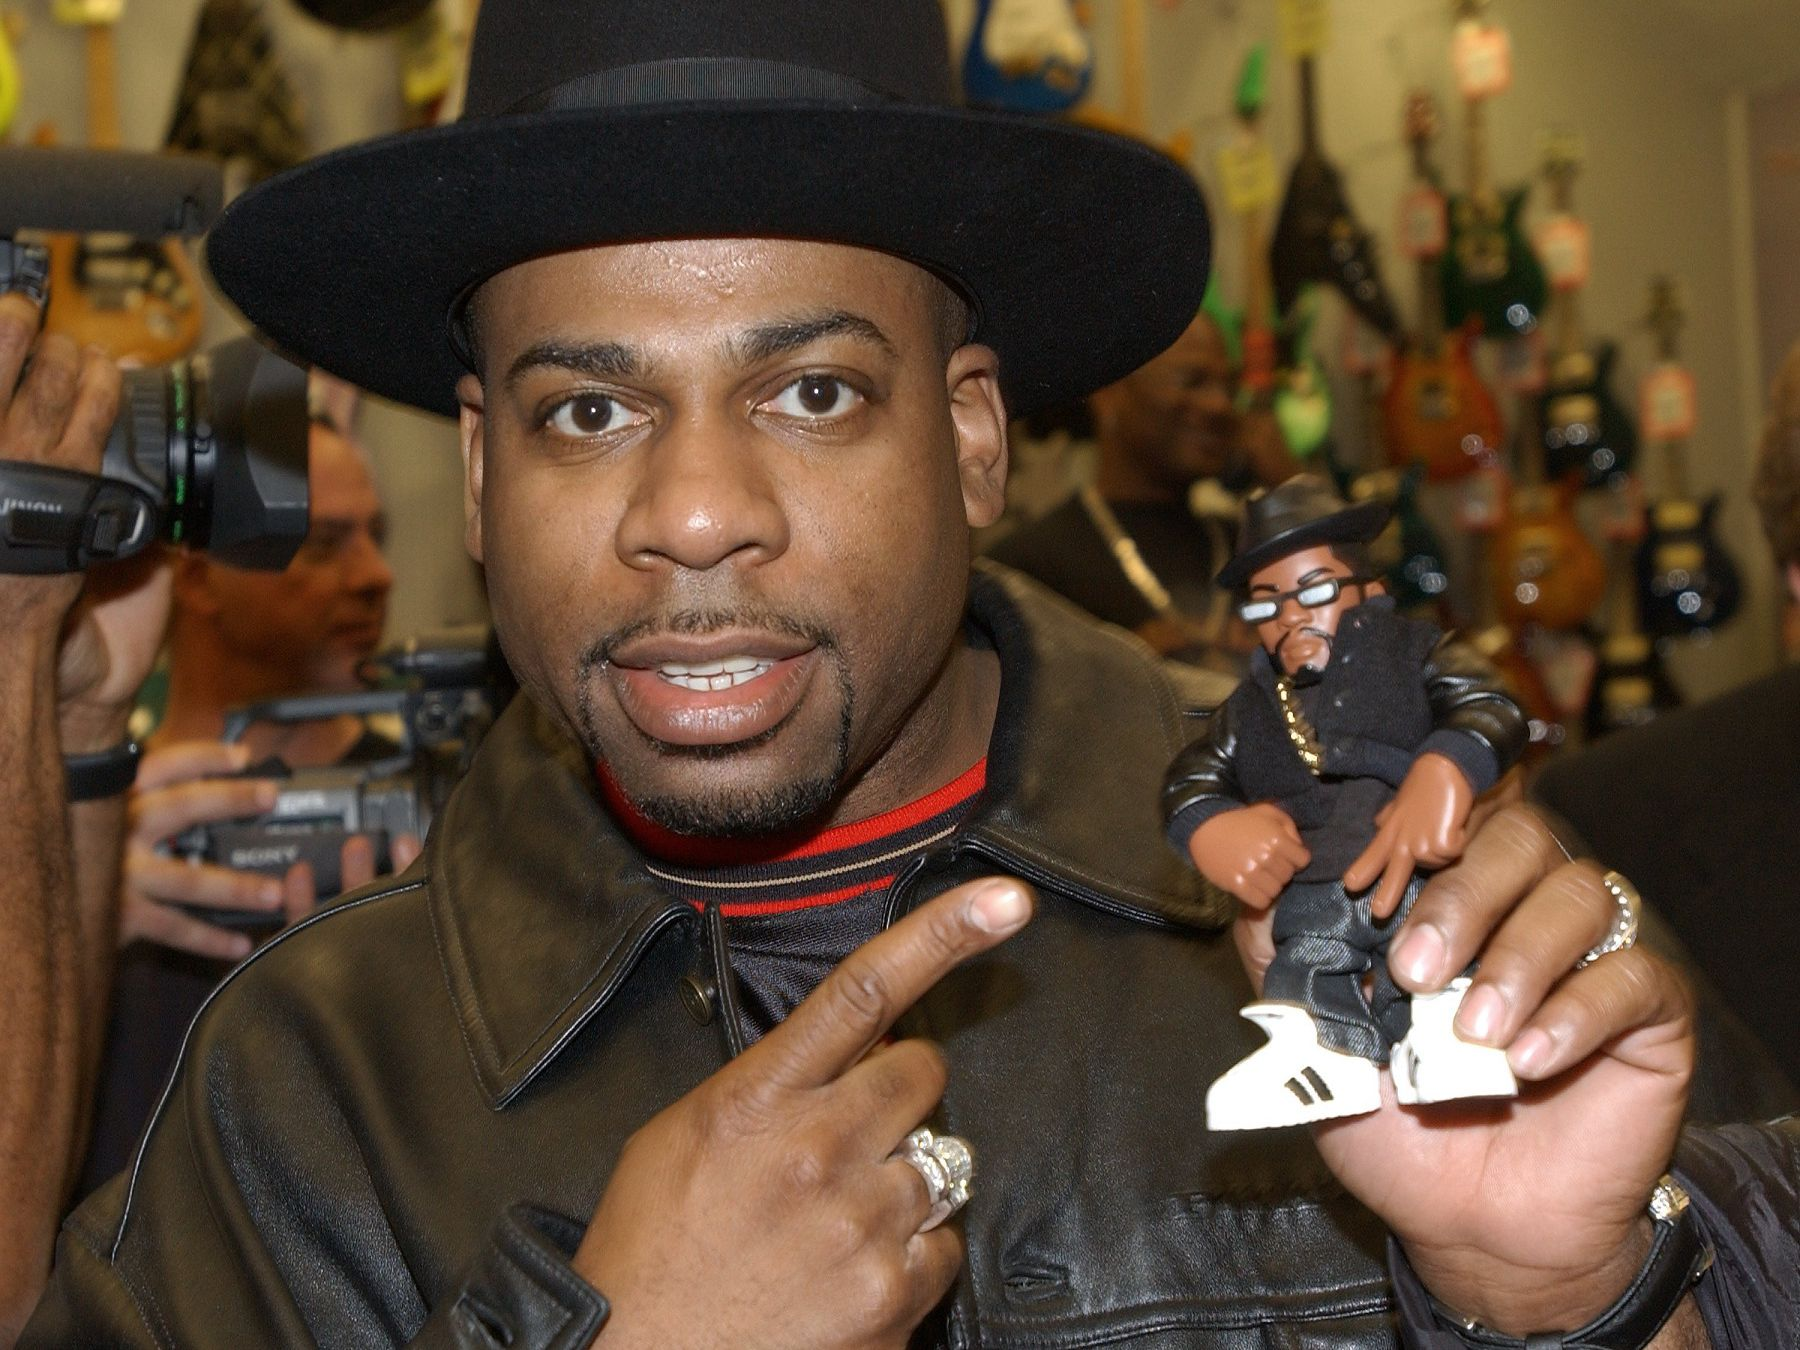 Two charged in 2002 killing of rapper Jam Master Jay